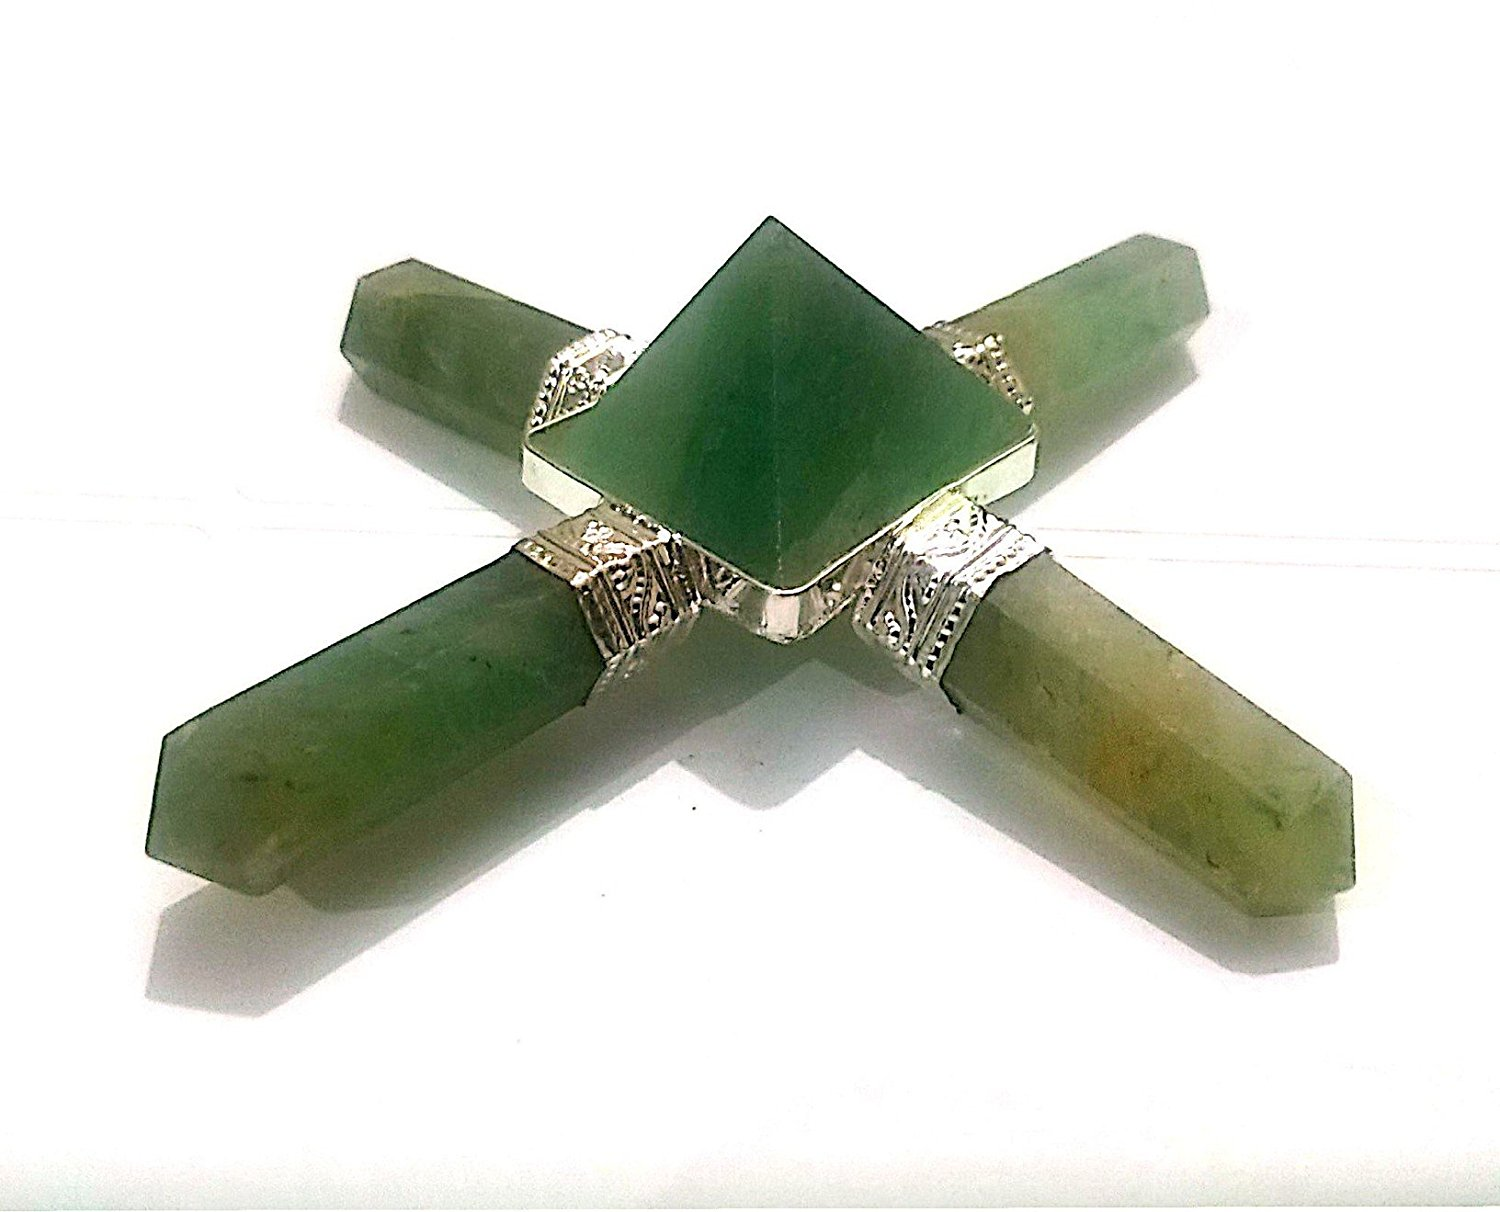 Healing Crystals India Natural Gemstone Green Aventurine Energy Generator 4 Point with Free eBook about Crystals Healing